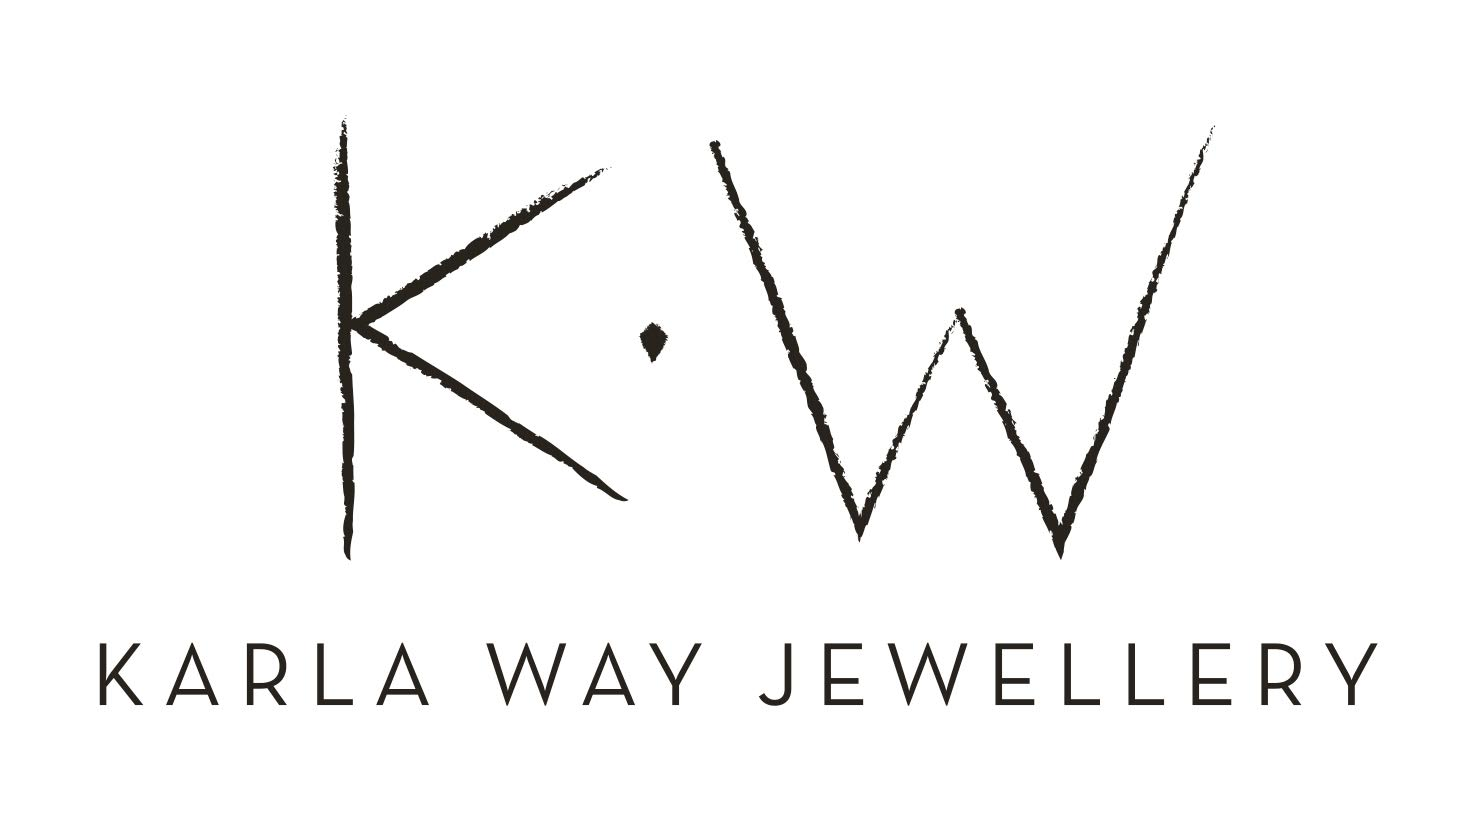 Karla Way Jewellery